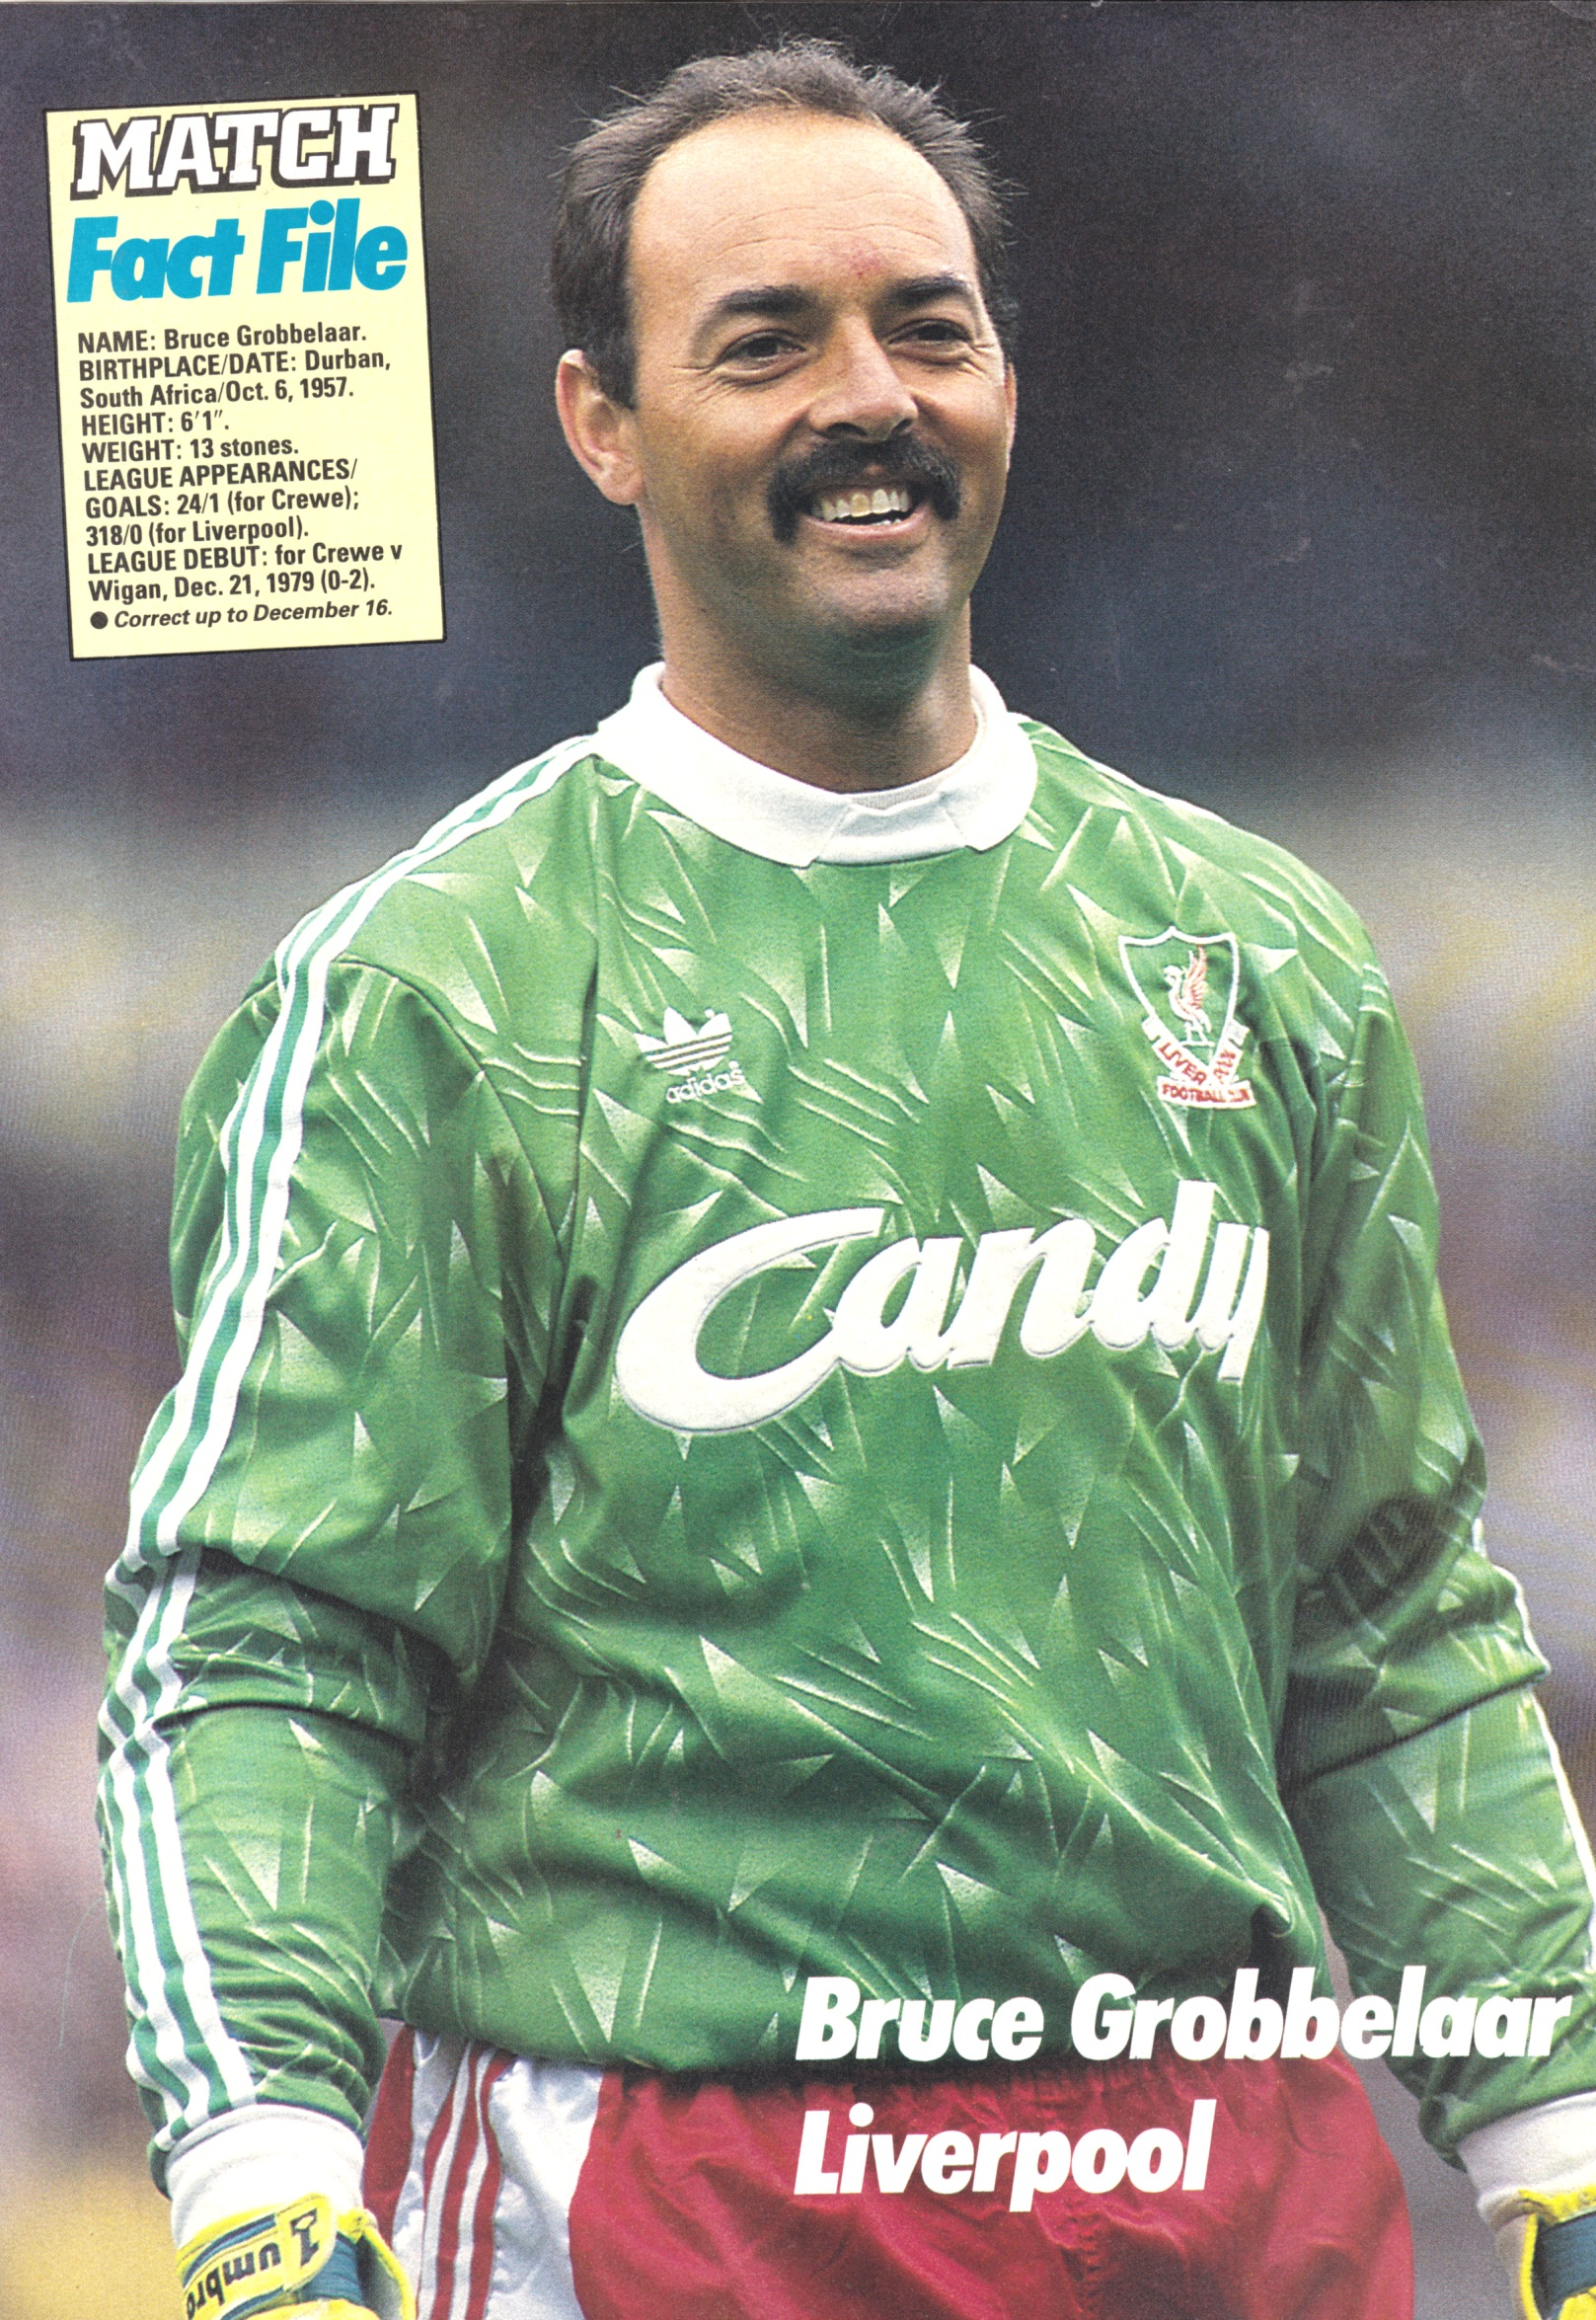 Liverpool career stats for Bruce Grobbelaar LFChistory Stats galore for Liverpool FC